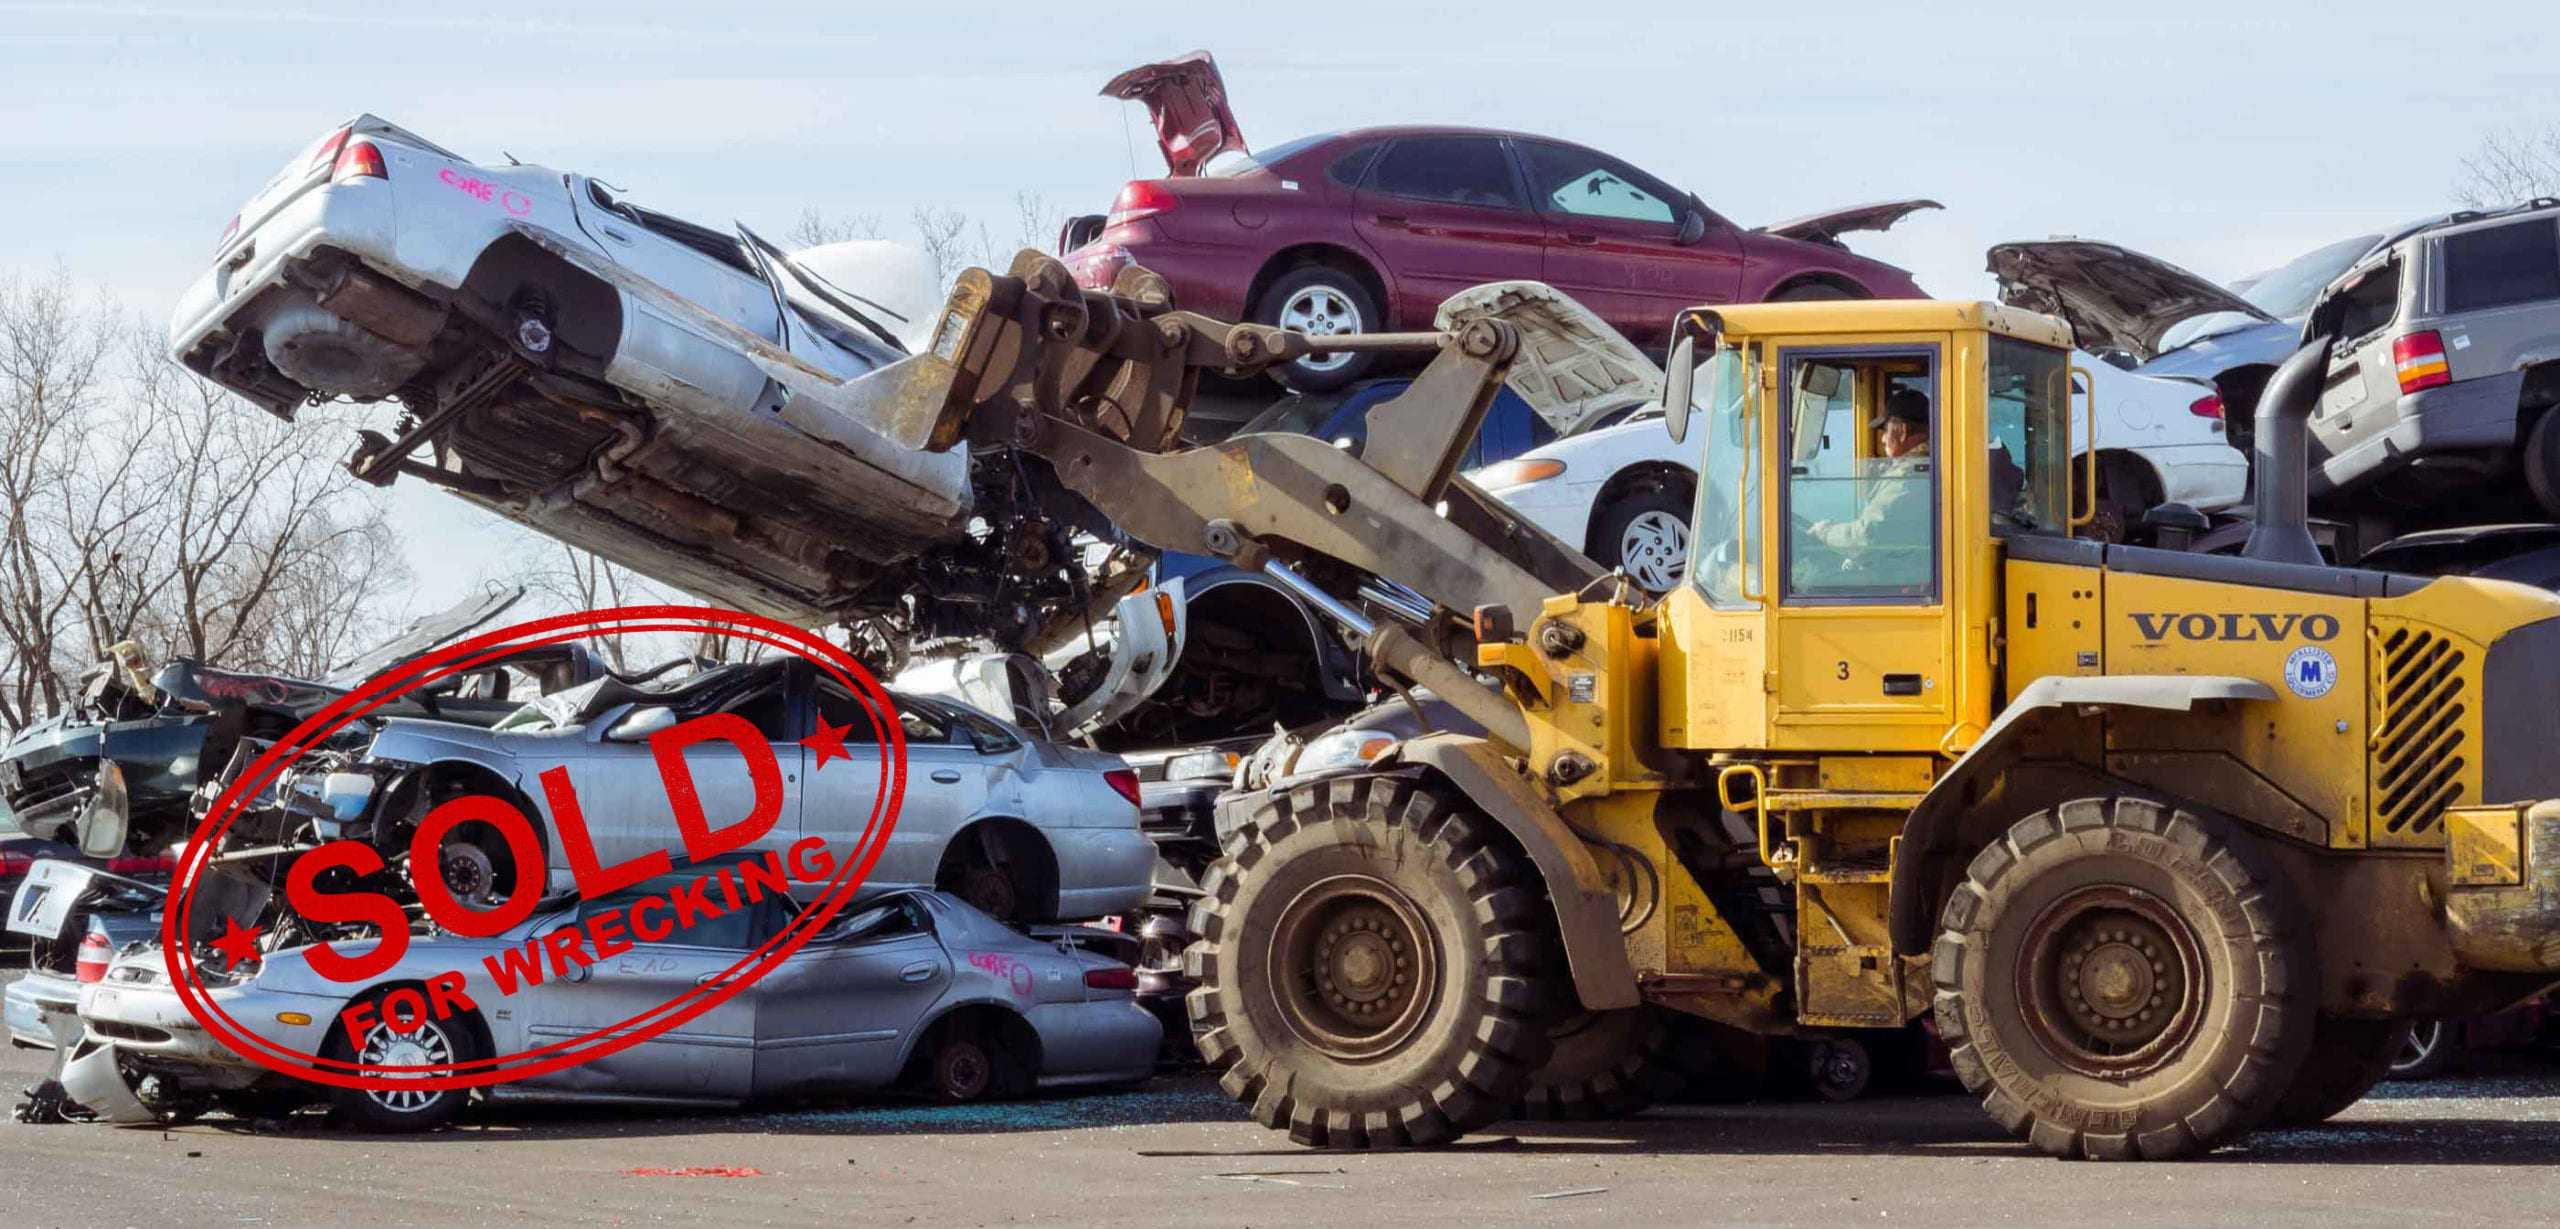 How to get your car sold for wrecking in Perth WA?